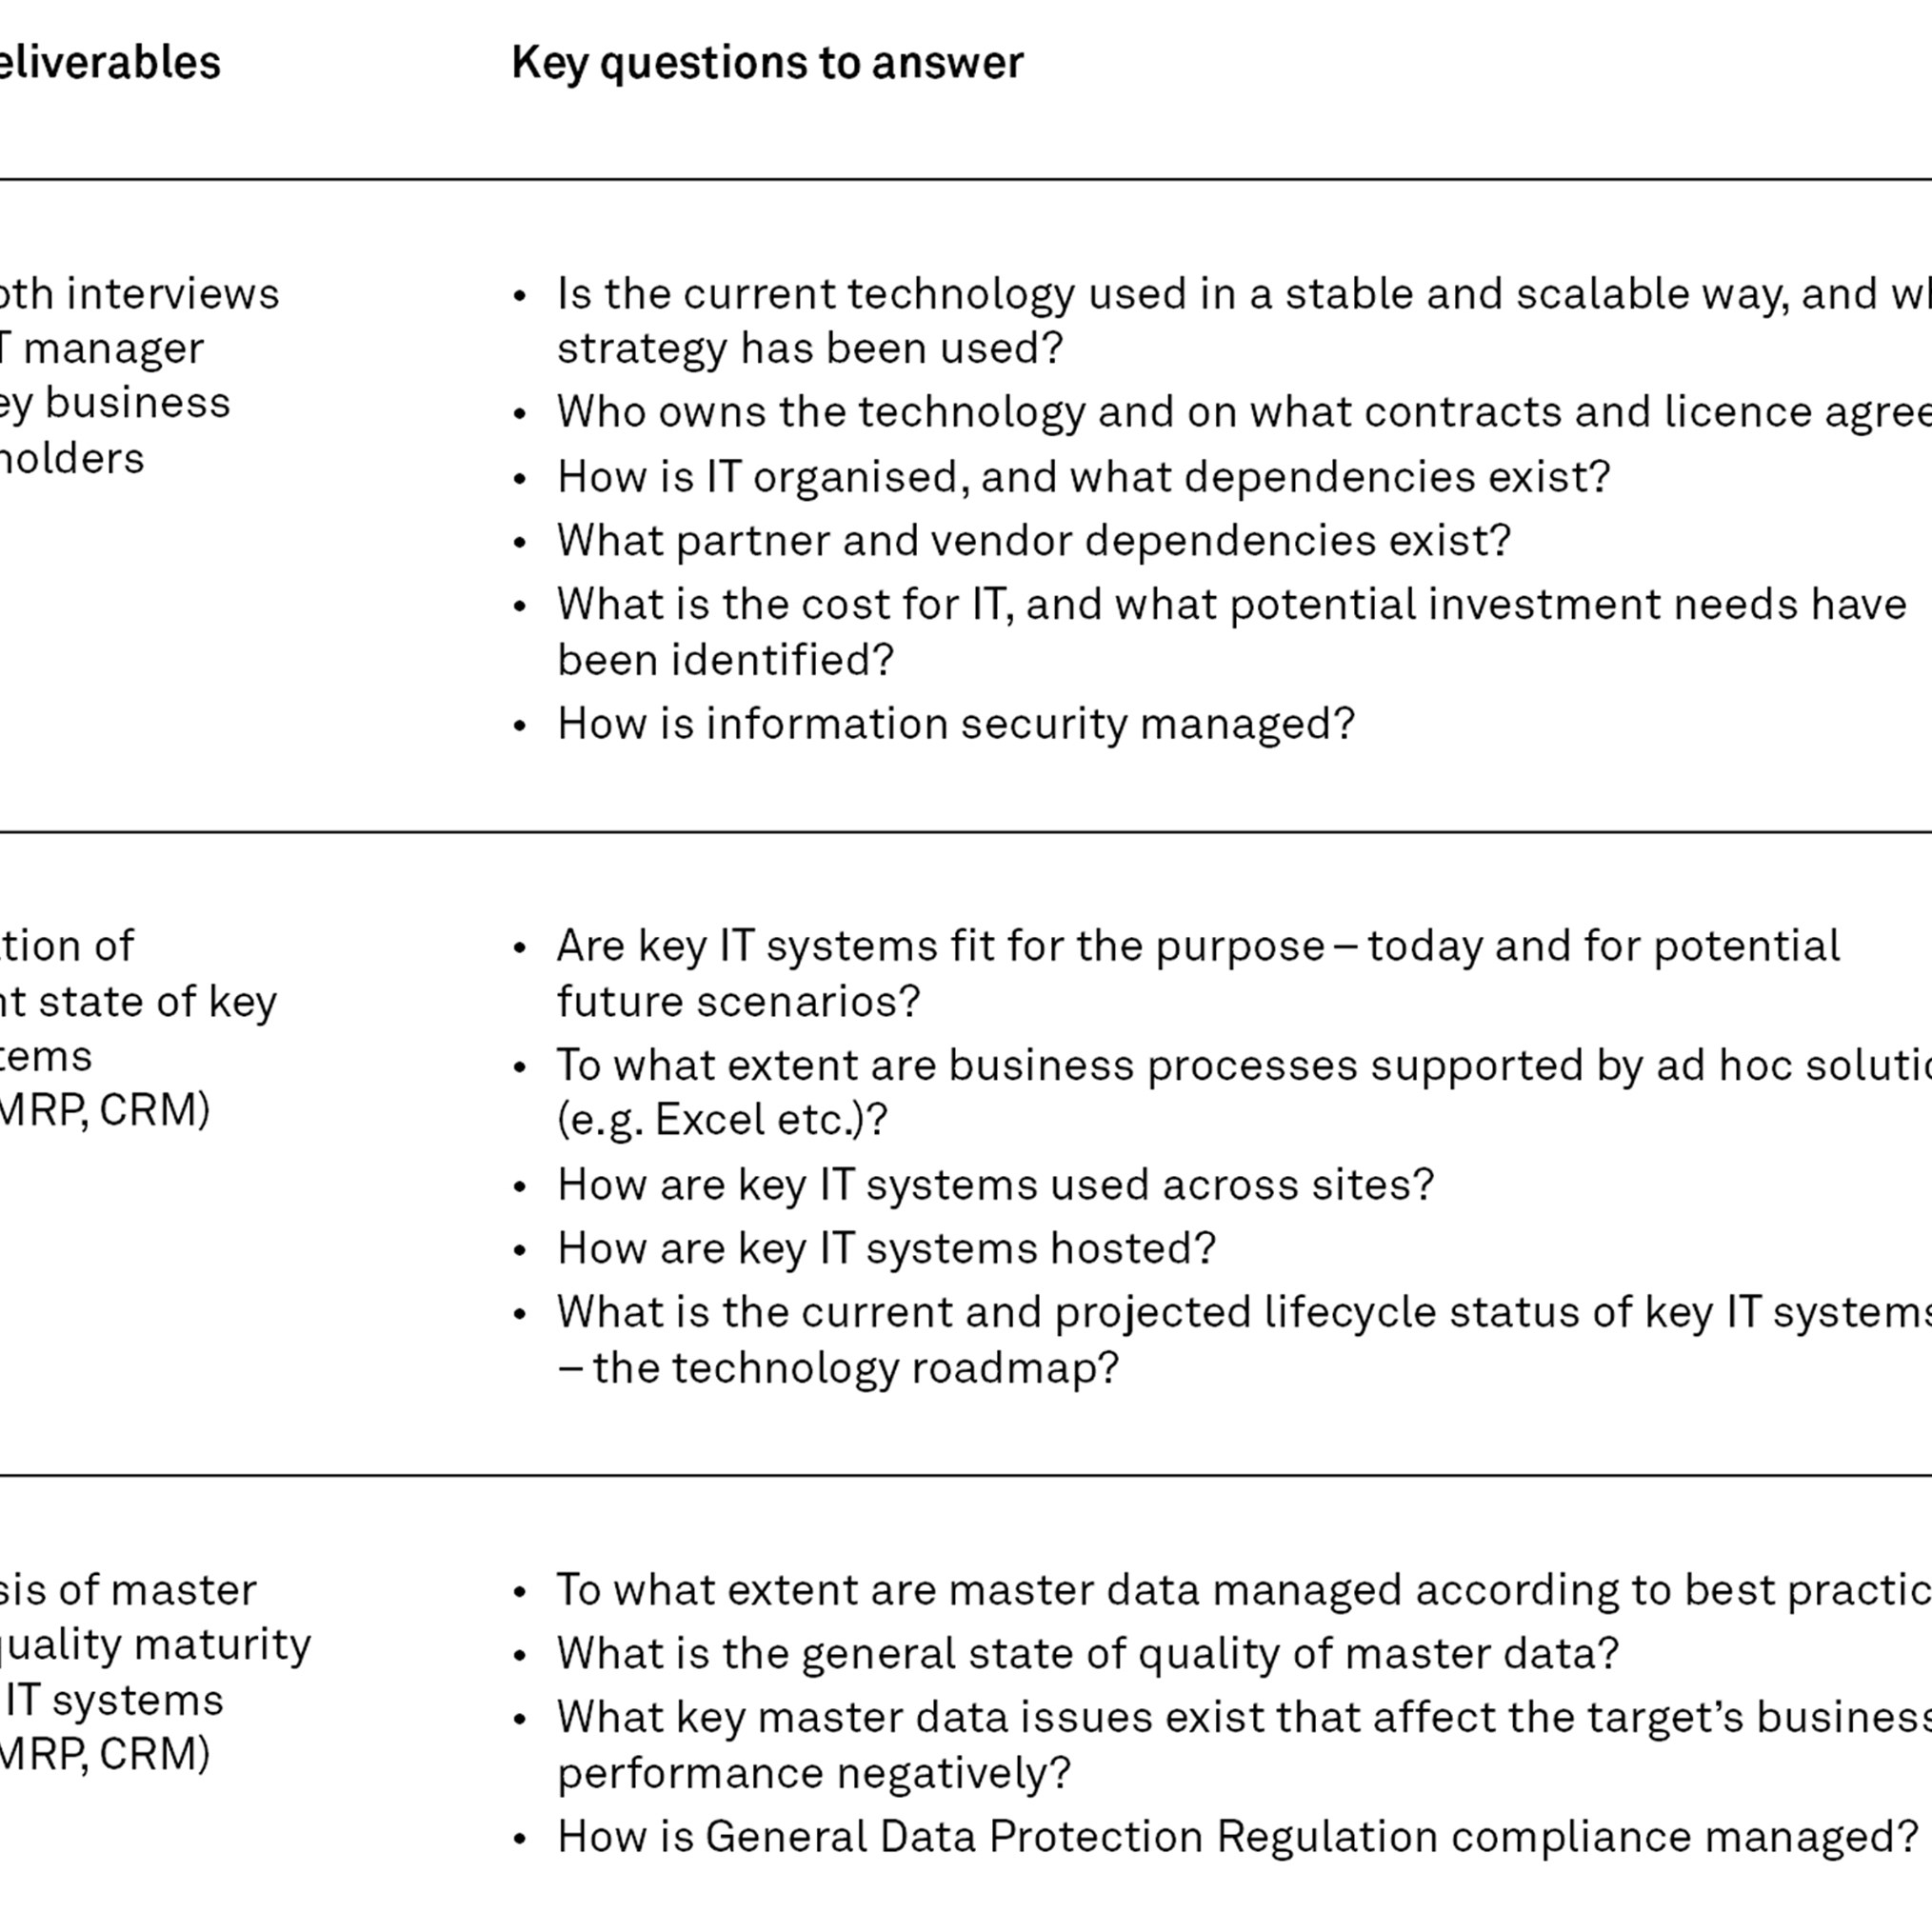 Examples of key questions for an IT due diligence